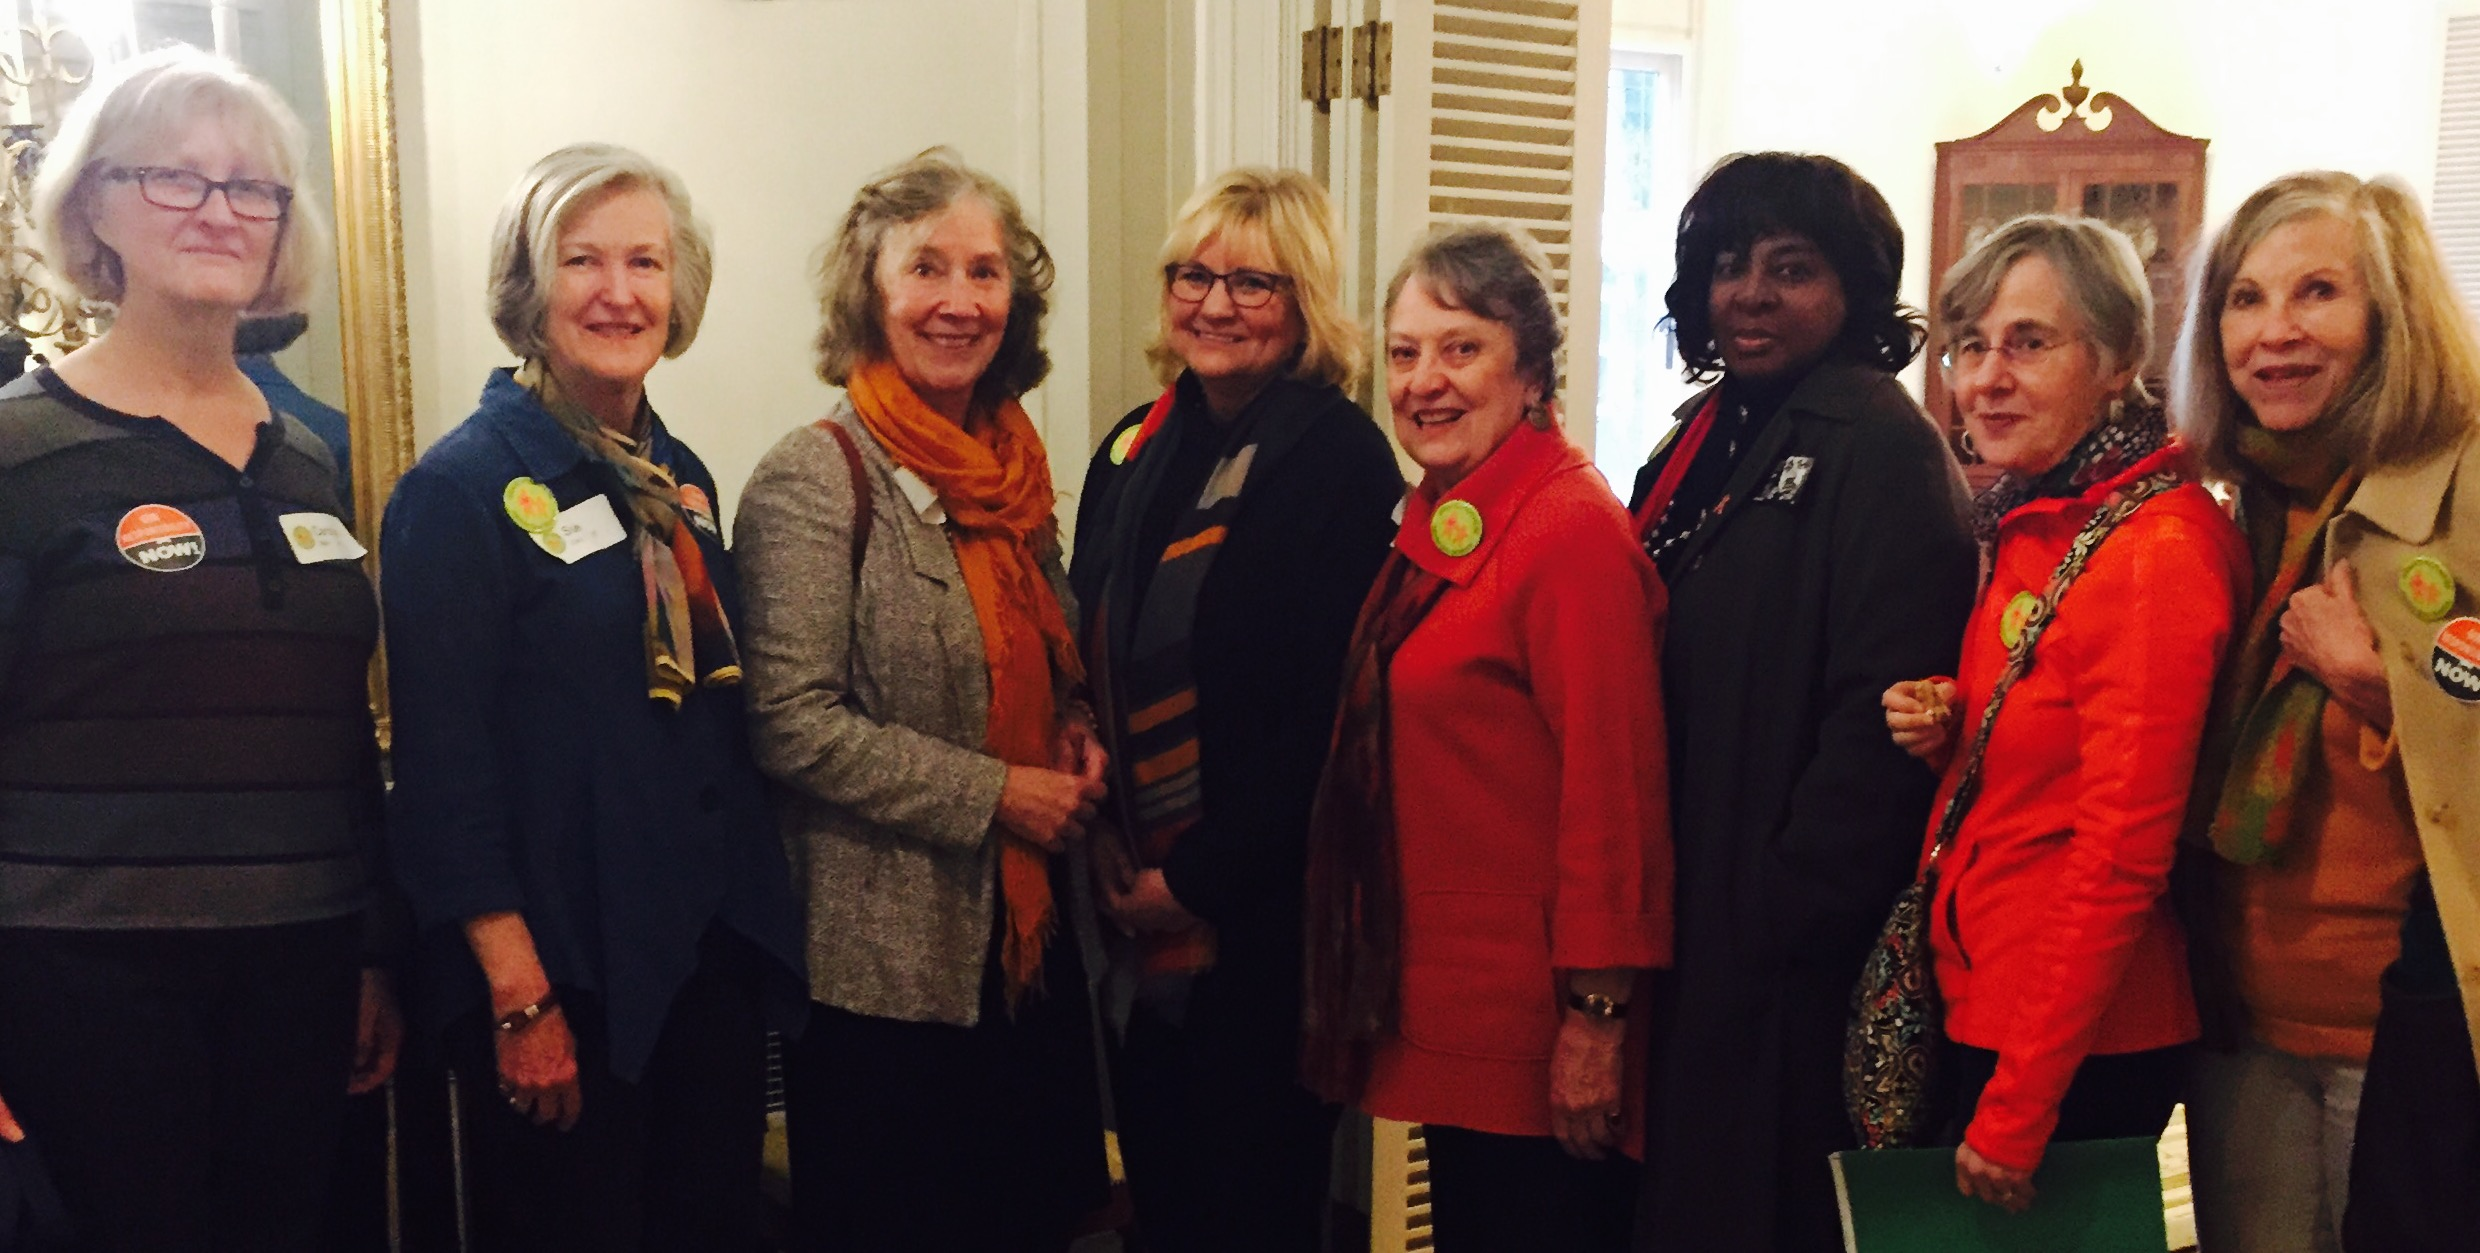 Grandmothers with GAGV member, First Lady Trudy Inslee